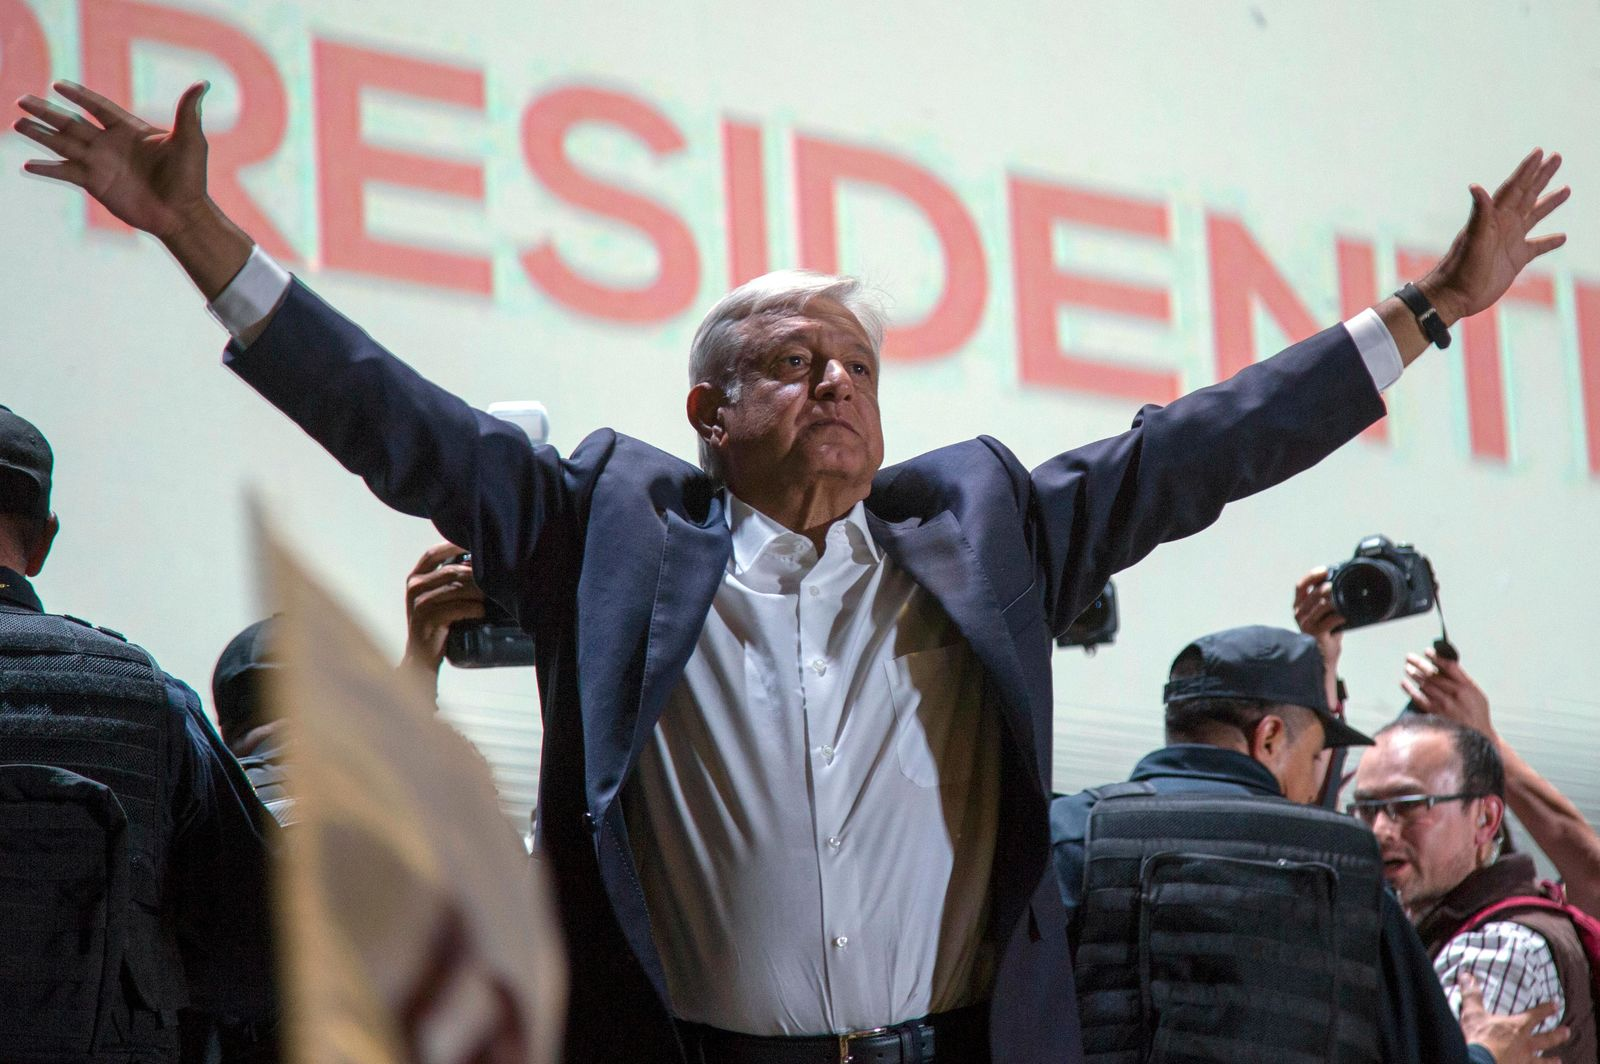 Presidential candidate Andres Manuel Lopez Obrador acknowledges his supporters as he arrives to Mexico City's main square, the Zocalo, Sunday, July 1, 2018. (AP Photo/Anthony Vazquez)